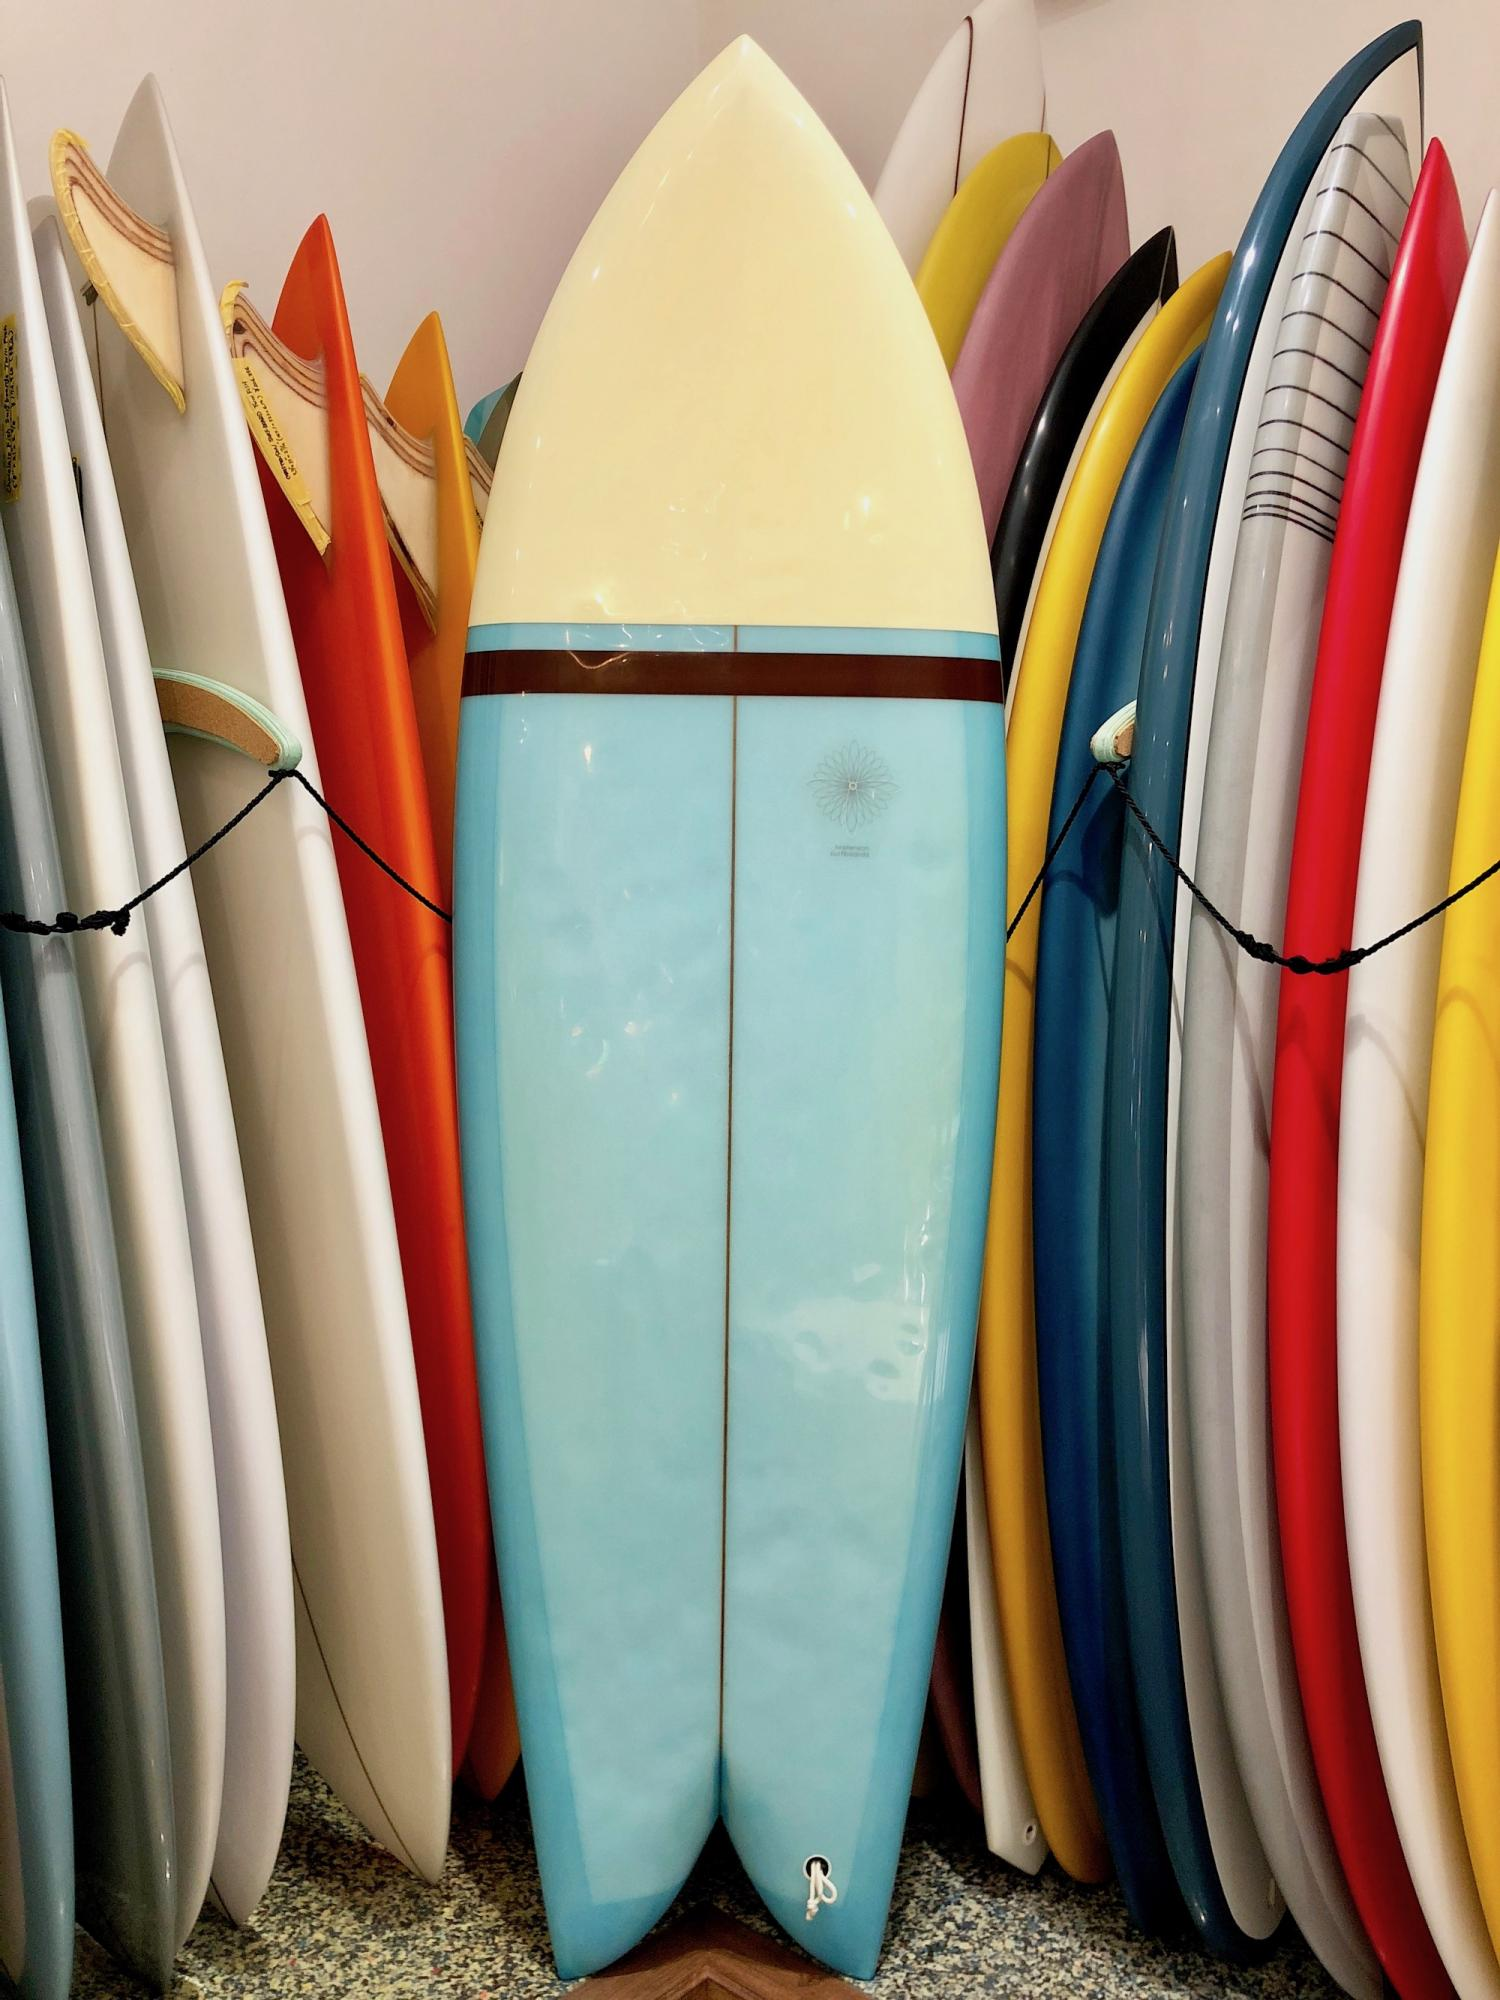 USED BOARDS (CHRISTENSON SURFBOARDS TWIN FISH 5.11)